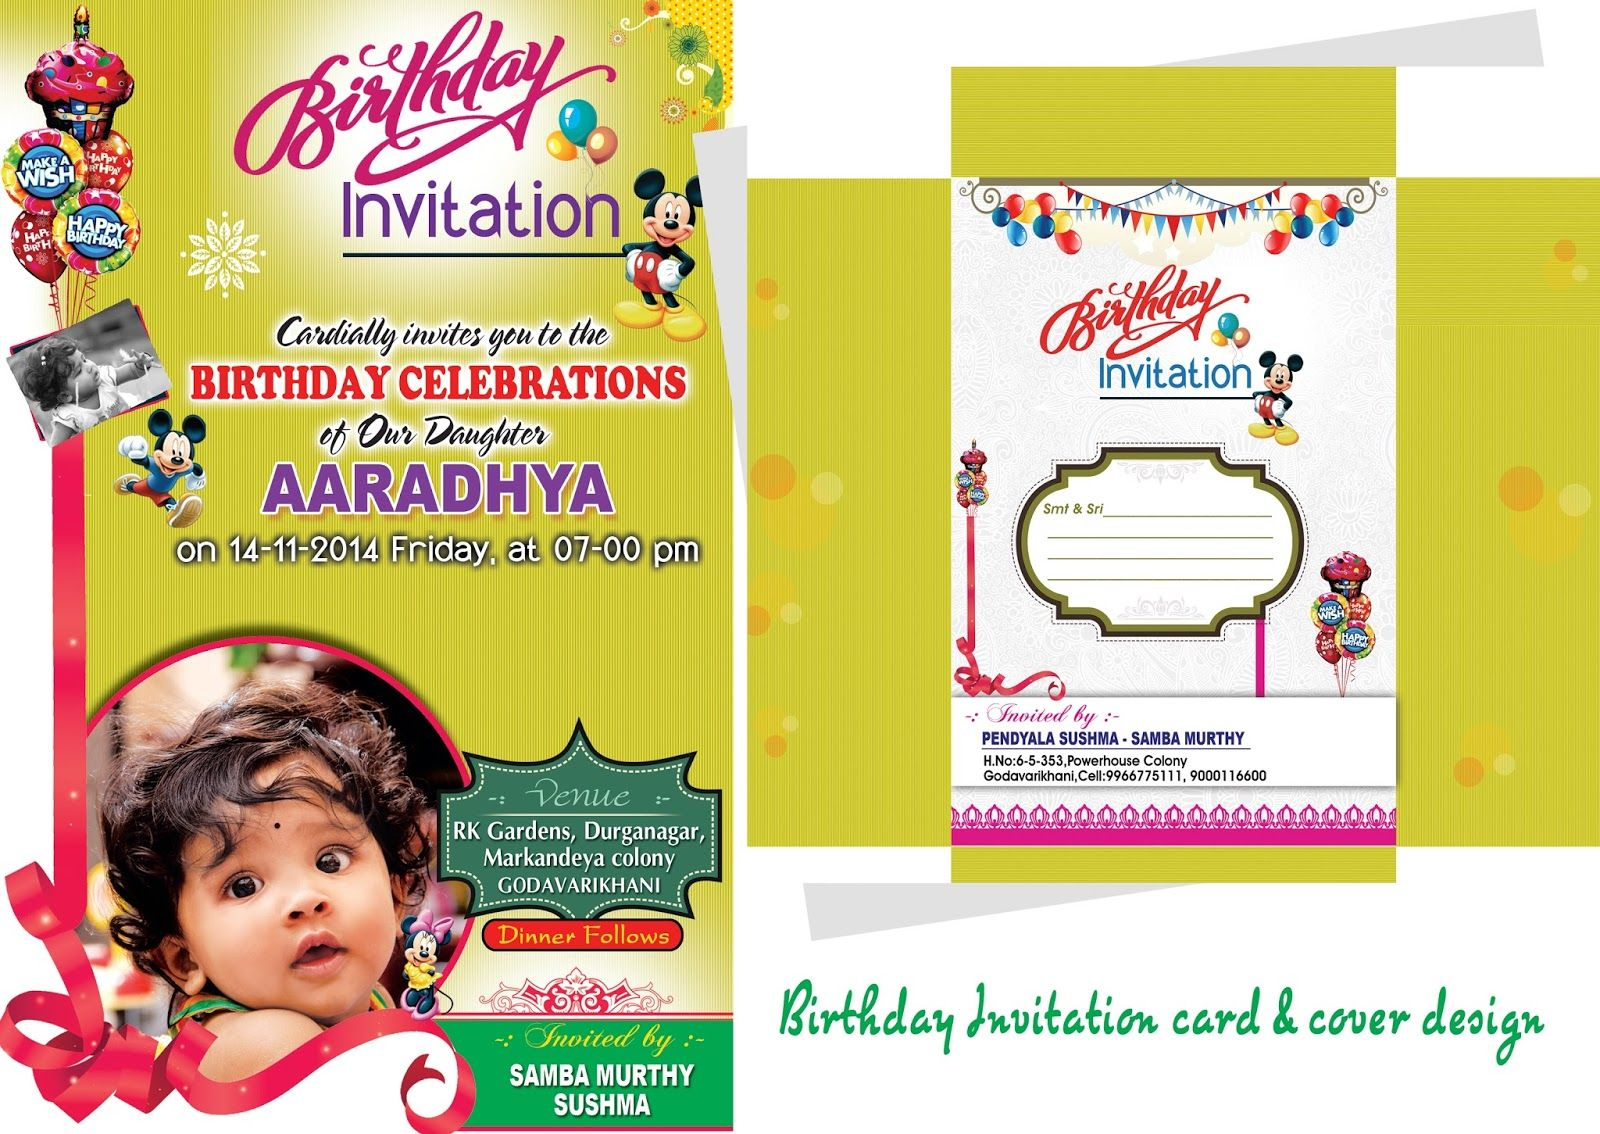 making a birthday invitation in photoshop ; 69e5203062a3b7f9073550fd841cab67